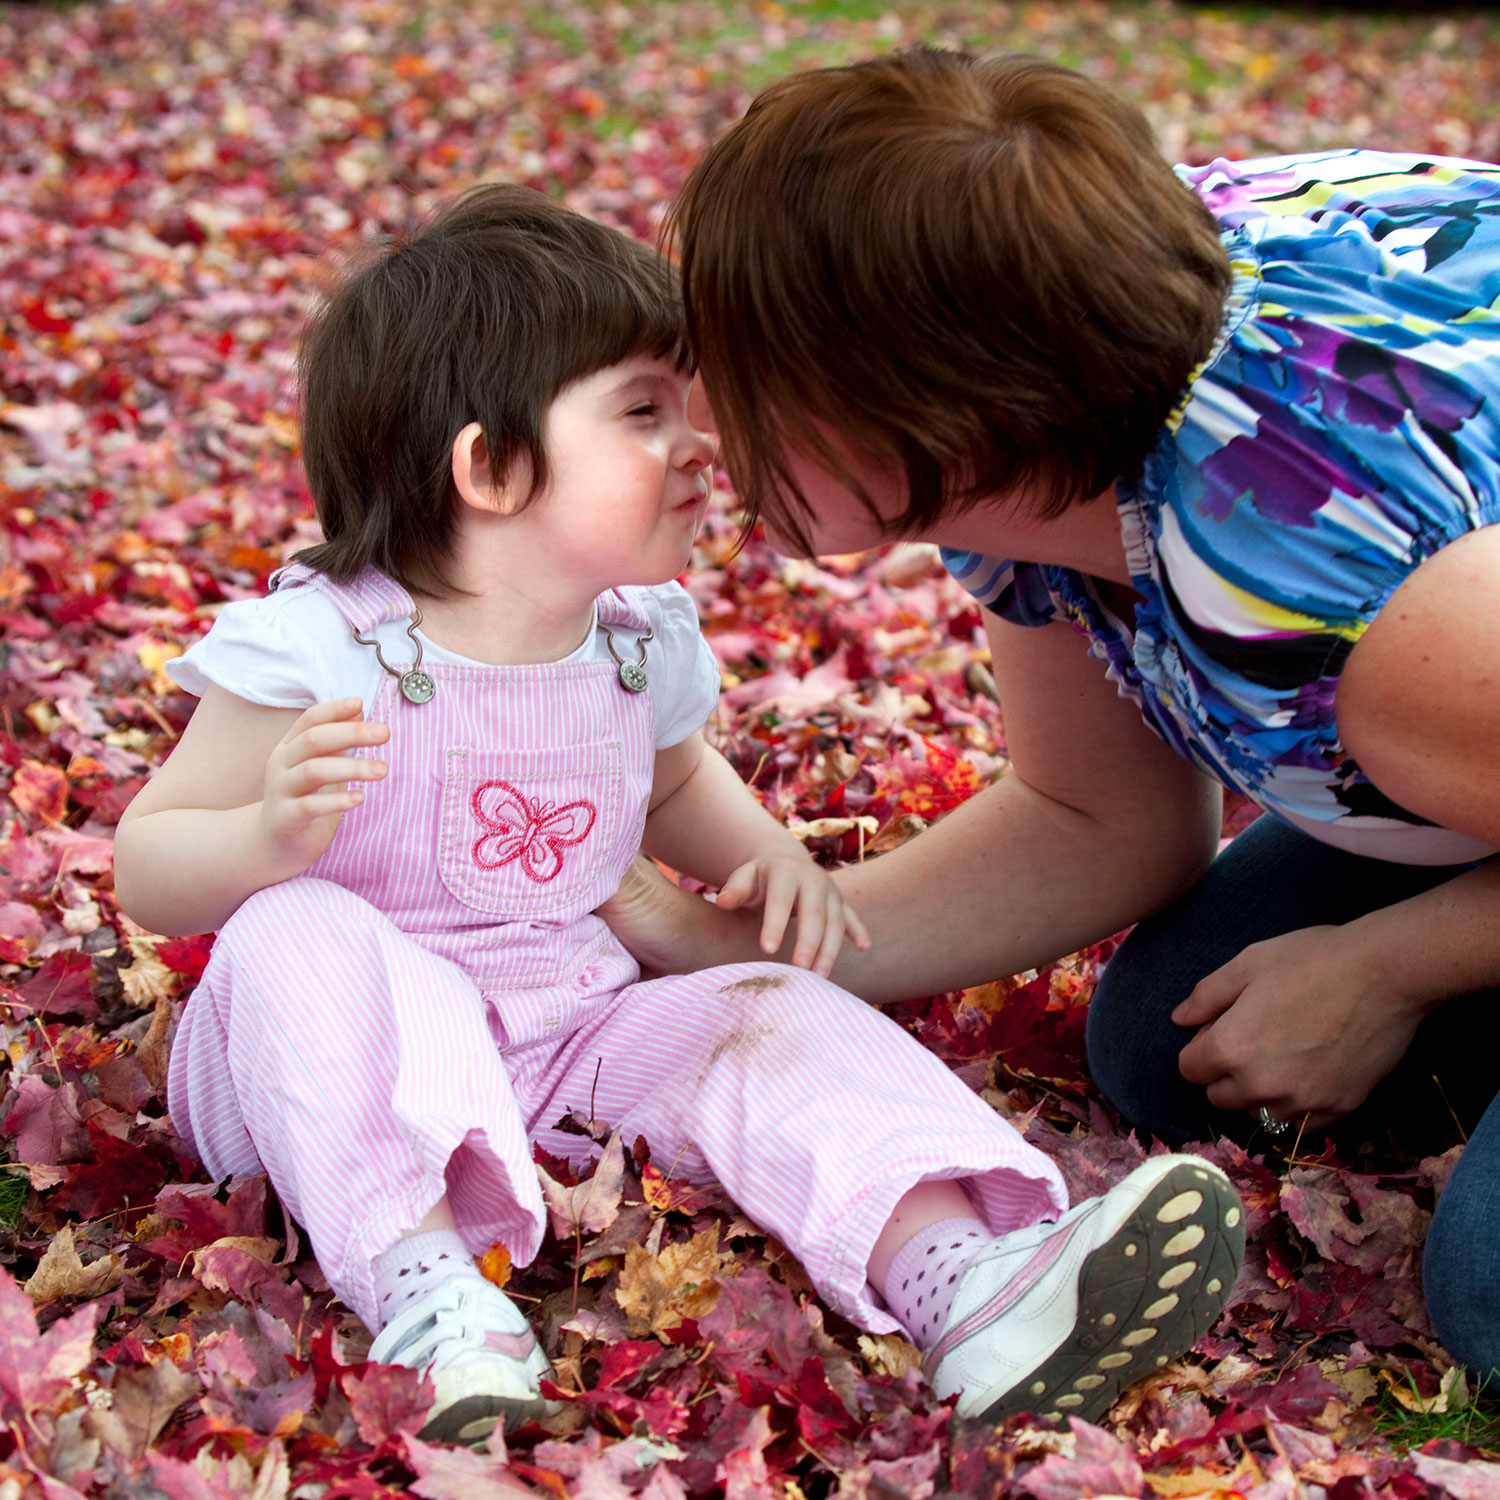 Toddler seated in autumn leaves outside reaches to kiss woman kneeling beside her